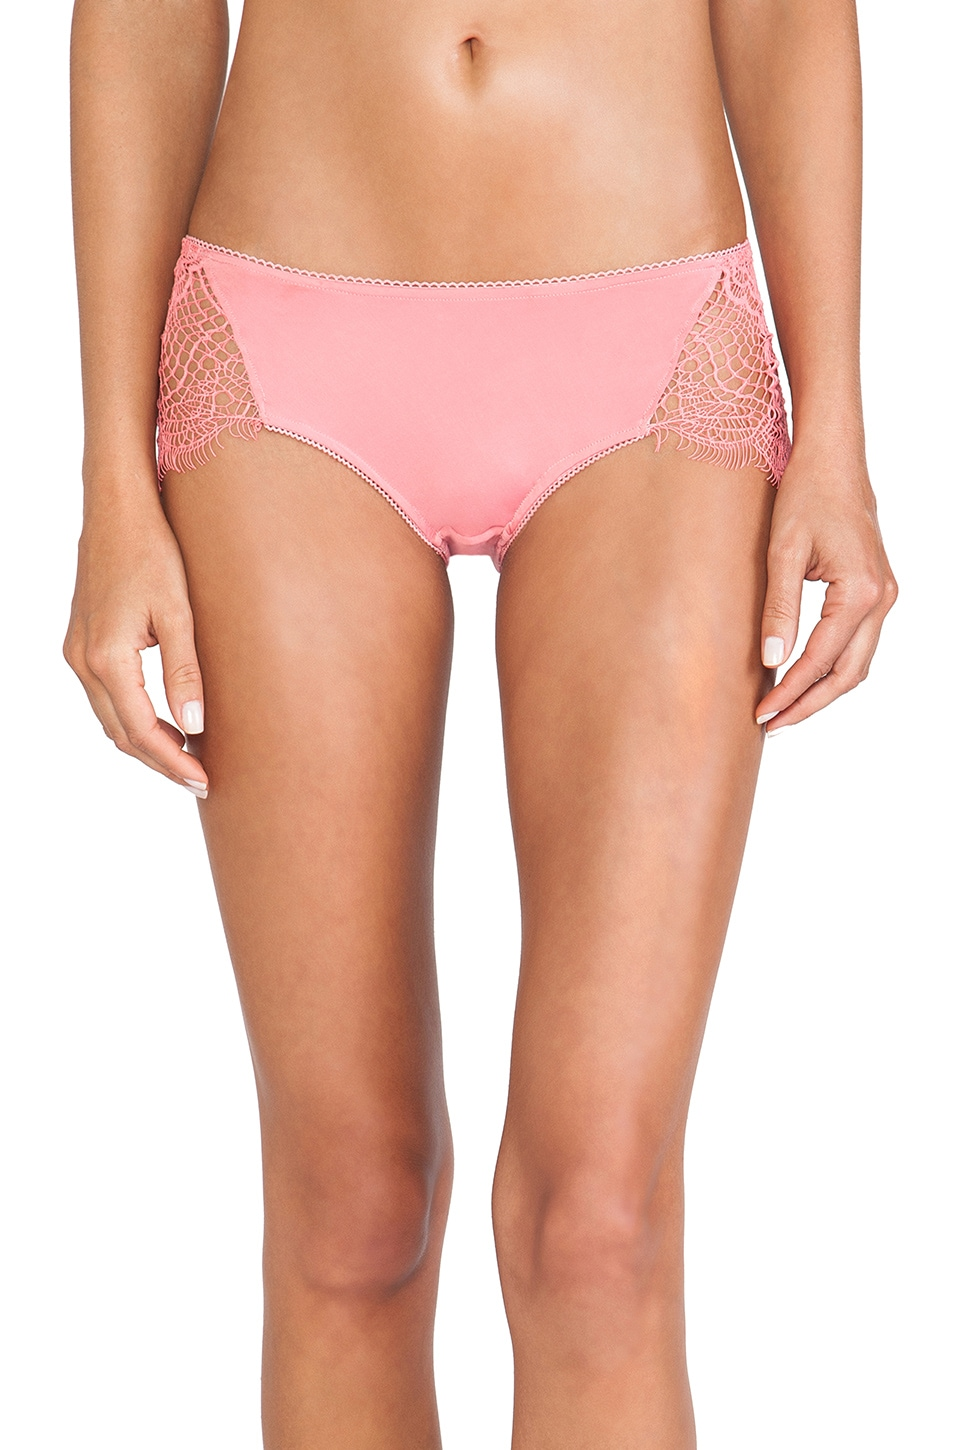 For Love & Lemons X REVOLVE Bat Your Lashes Panty in Pink Spiderweb